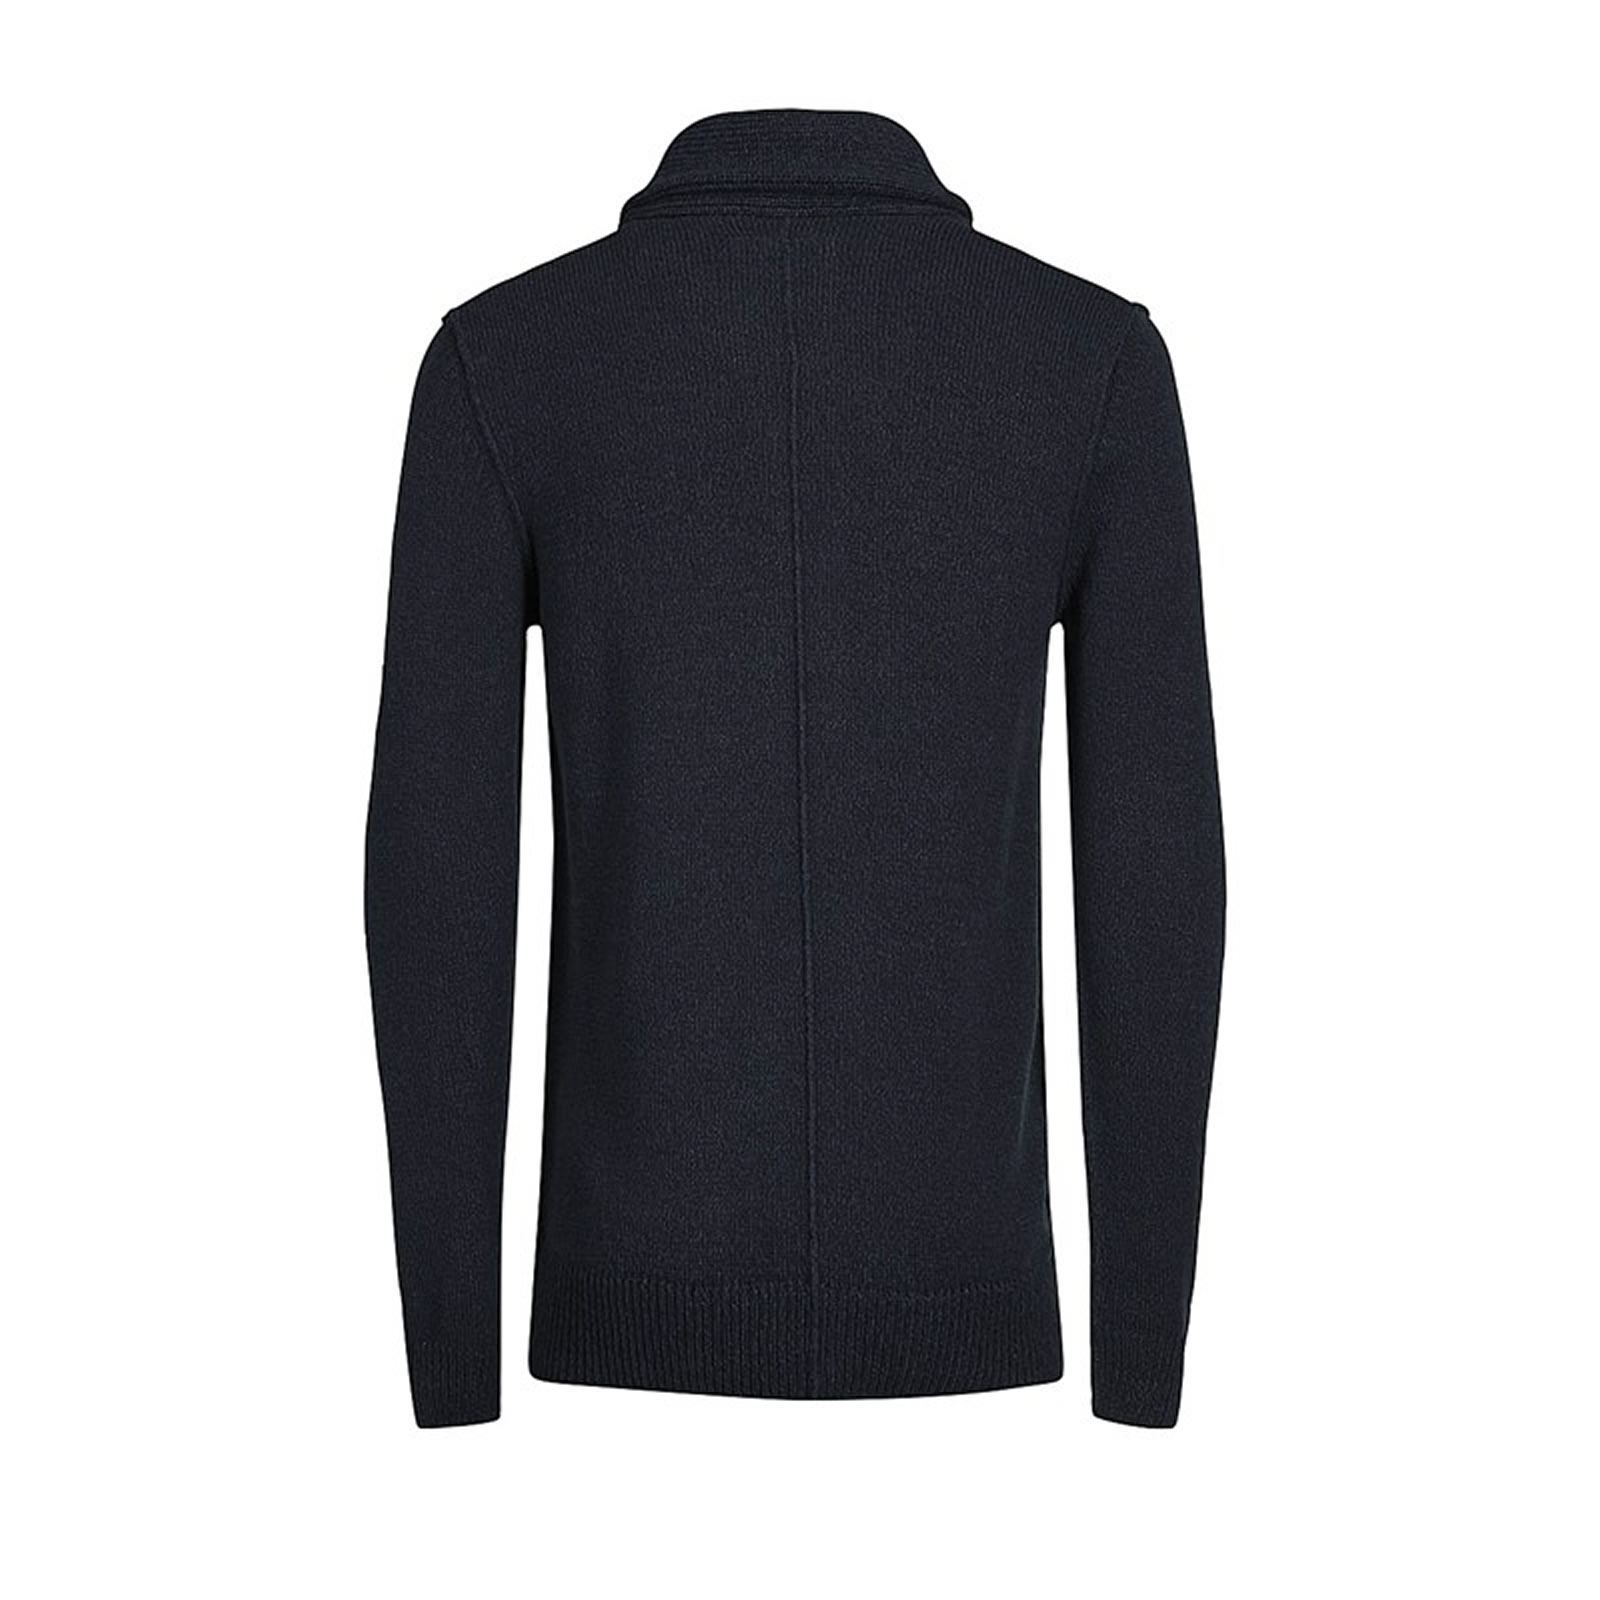 Mens-Cardigan-Jumper-JACK-amp-JONES-Instinct-Shawl-Neck-Button-Up-Sweater thumbnail 5